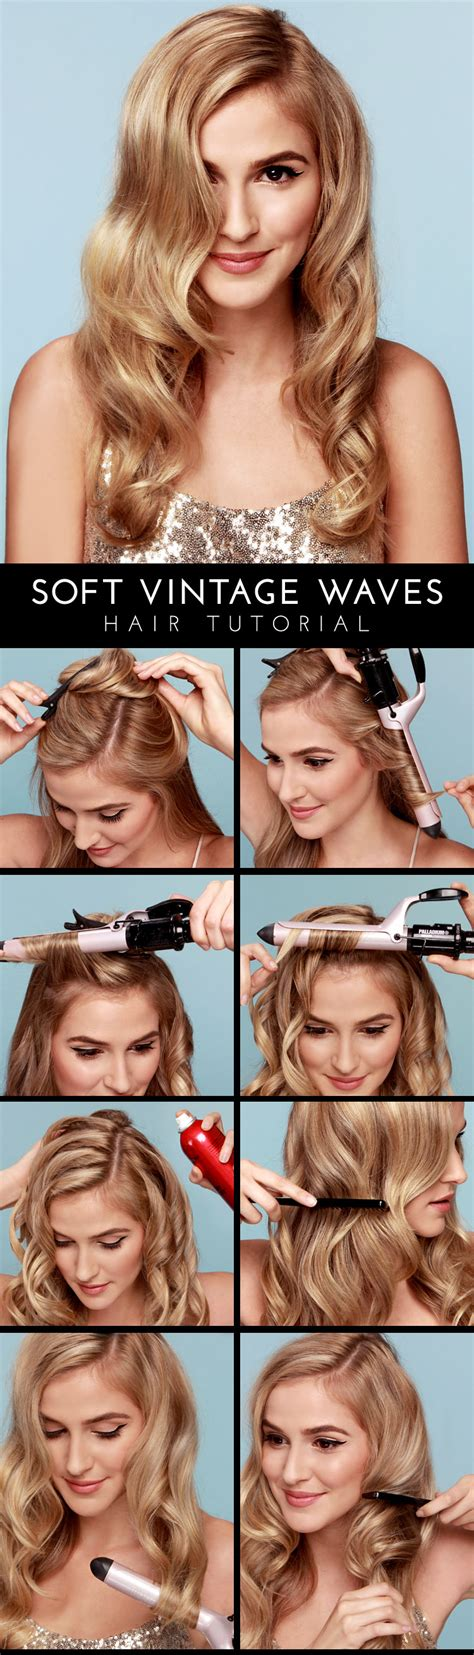 wave tutorial lulu s how to soft vintage waves hair tutorial lulus